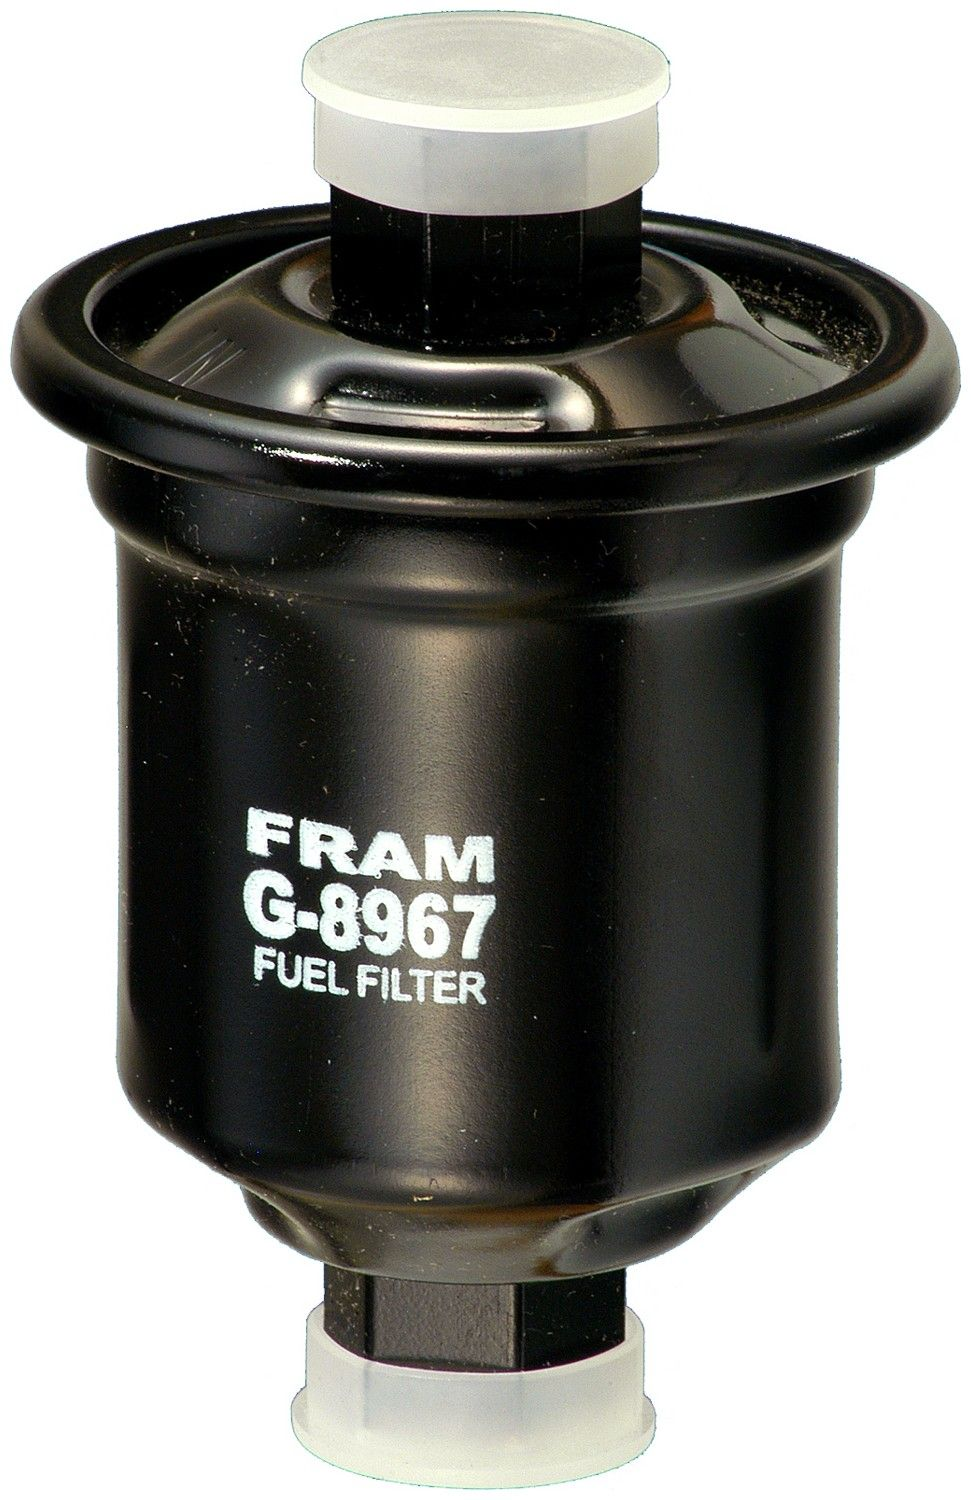 2000 Toyota Tundra Fuel Filter 6 Cyl 3.4L (Fram G8967) In-Line Fuel Filter .